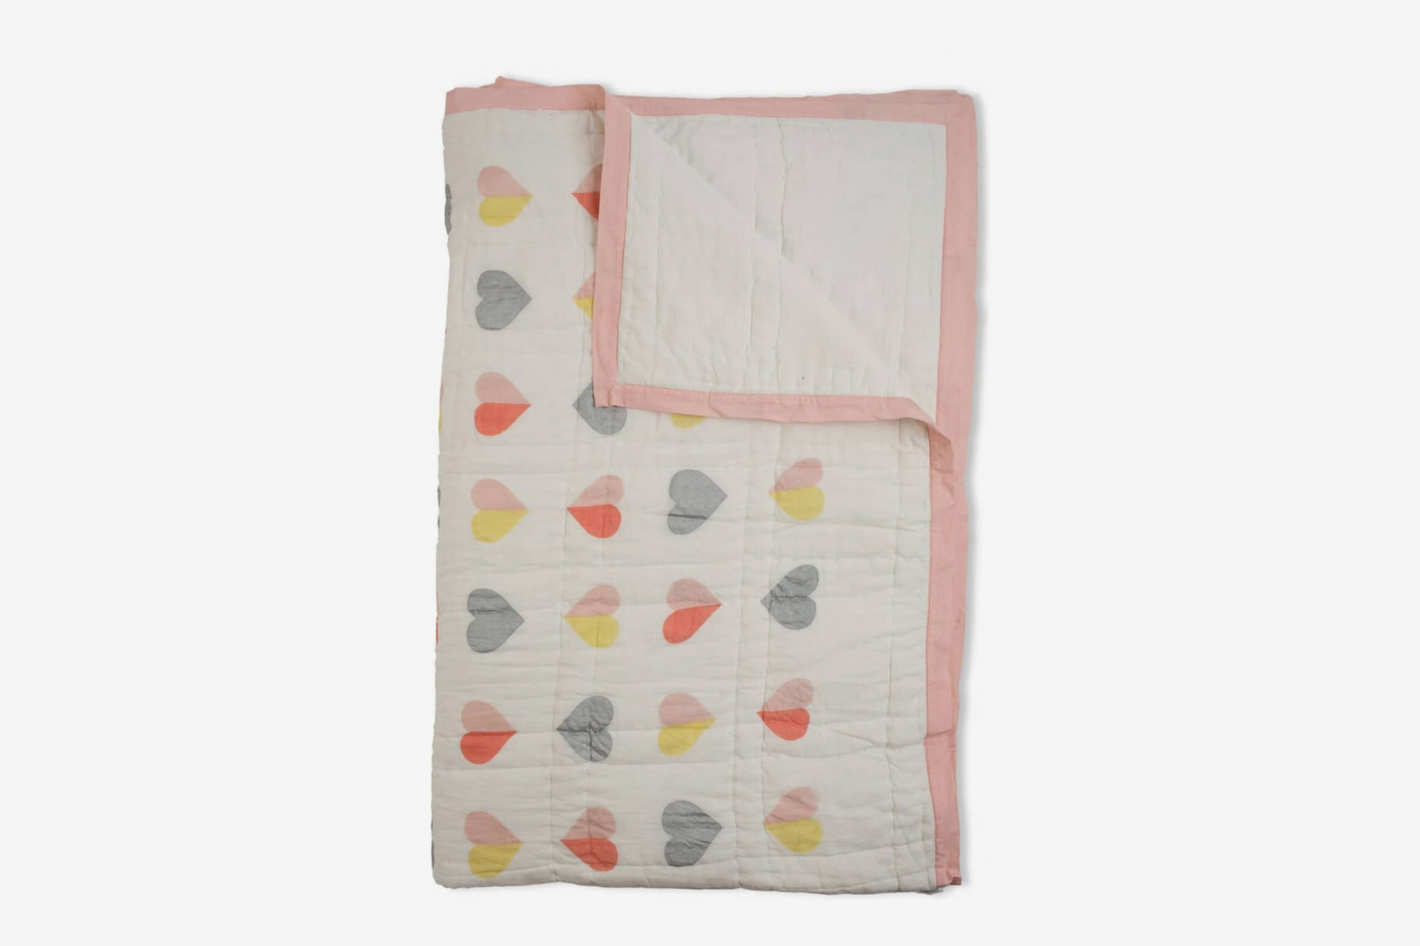 Lil' Pyar Hearts Quilt